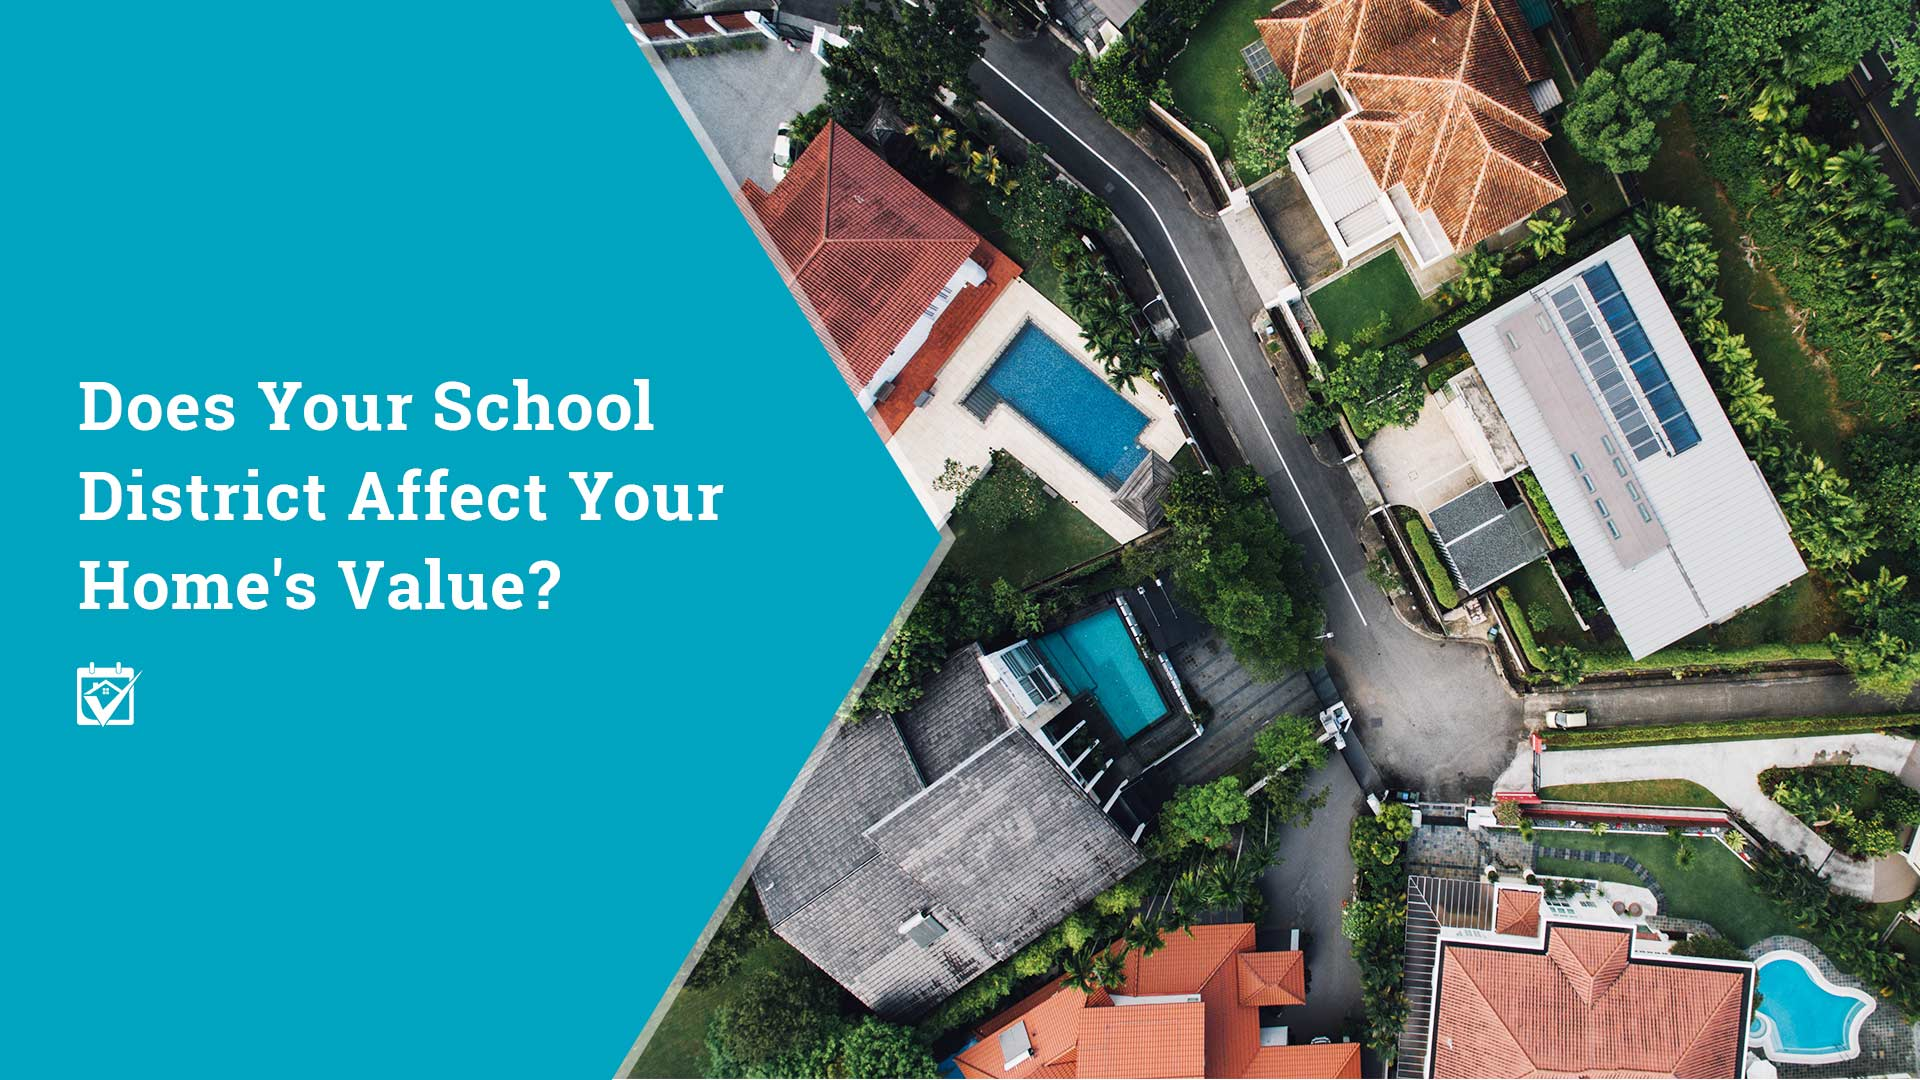 Does Your School District Affect Your Home Value?